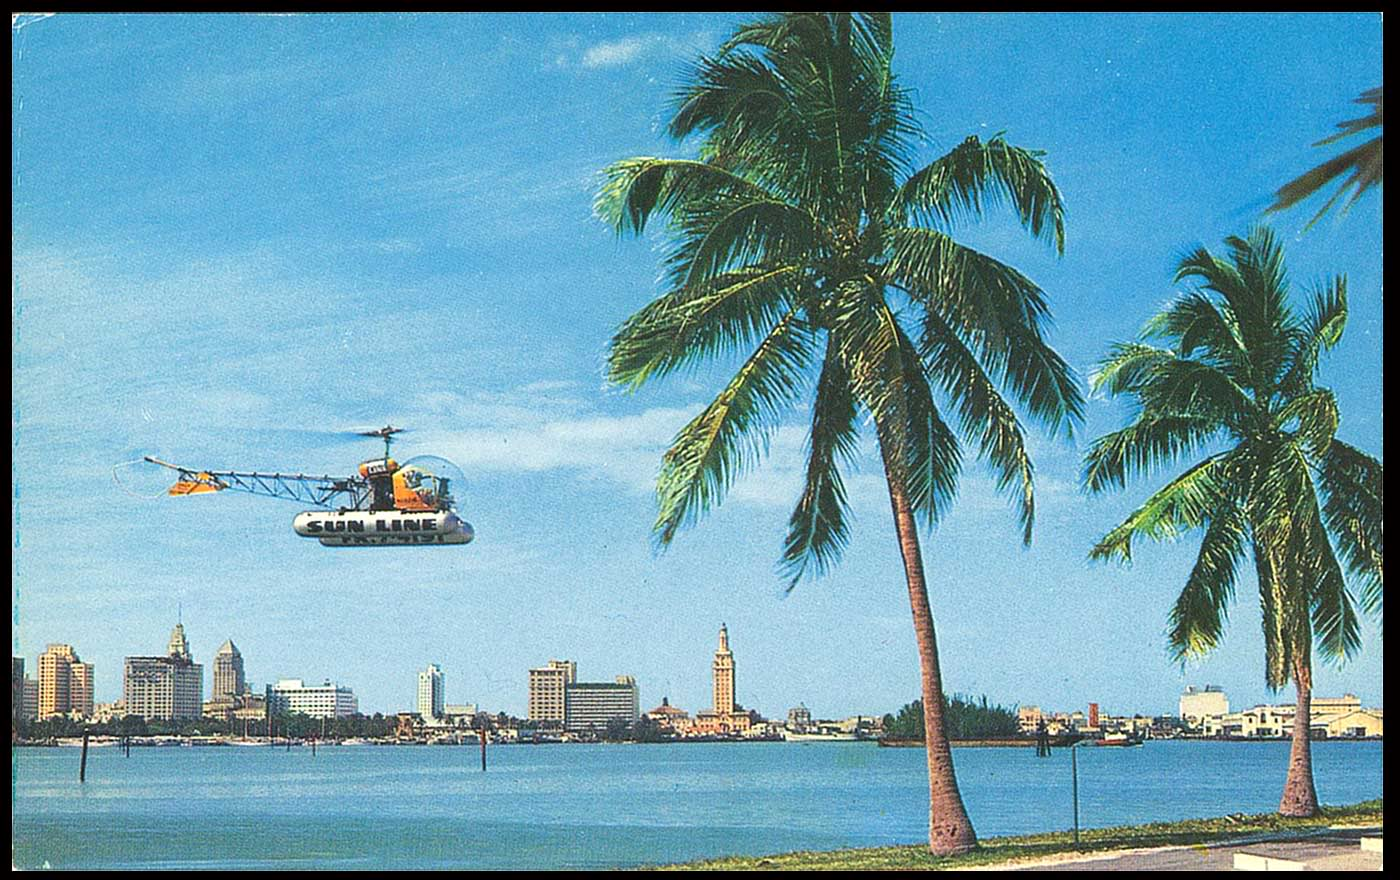 helicopter tracing with Postcard For Sun Line Helicopters 1960s on Postcard For Sun Line Helicopters 1960s also Letter H Coloring Pages further Sikorsky Unveils S 97 Raider Road To Fvl additionally 34626 Special Services Merryweather And Lester moreover Osama Bin Ladens Abbottabad  pound.